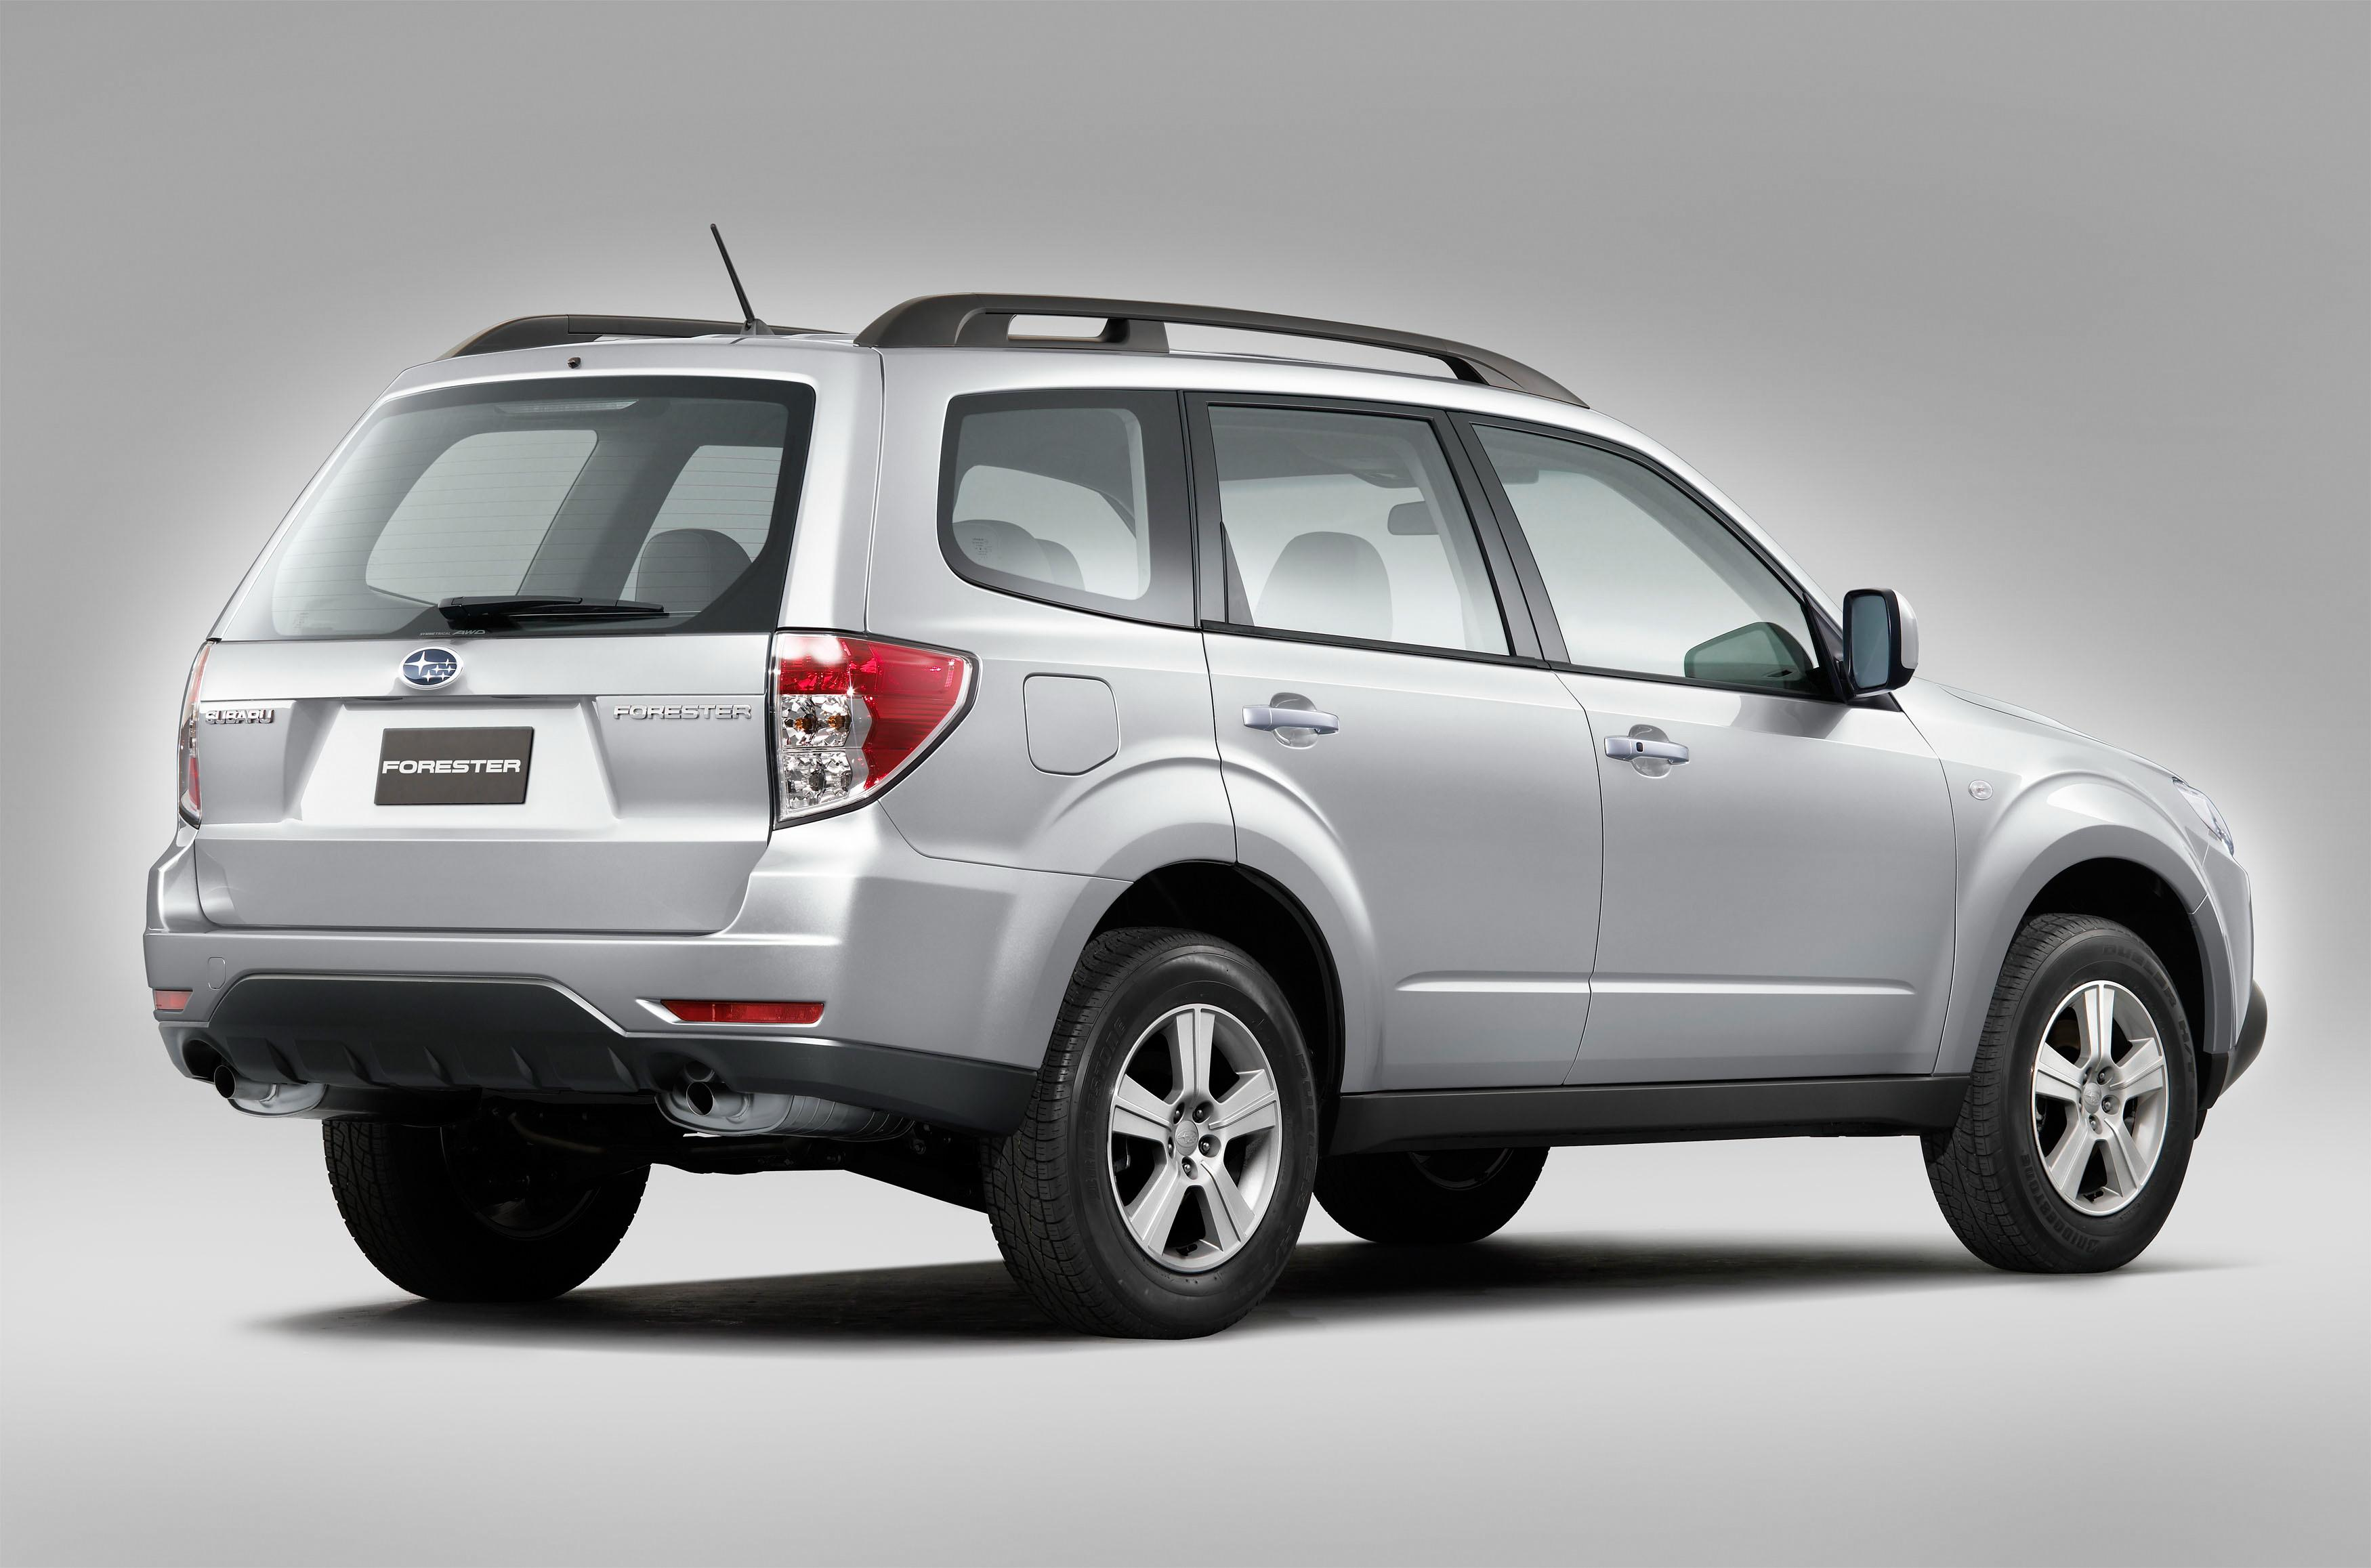 2008 Subaru Legacy 2 0D And Outback 2 0D